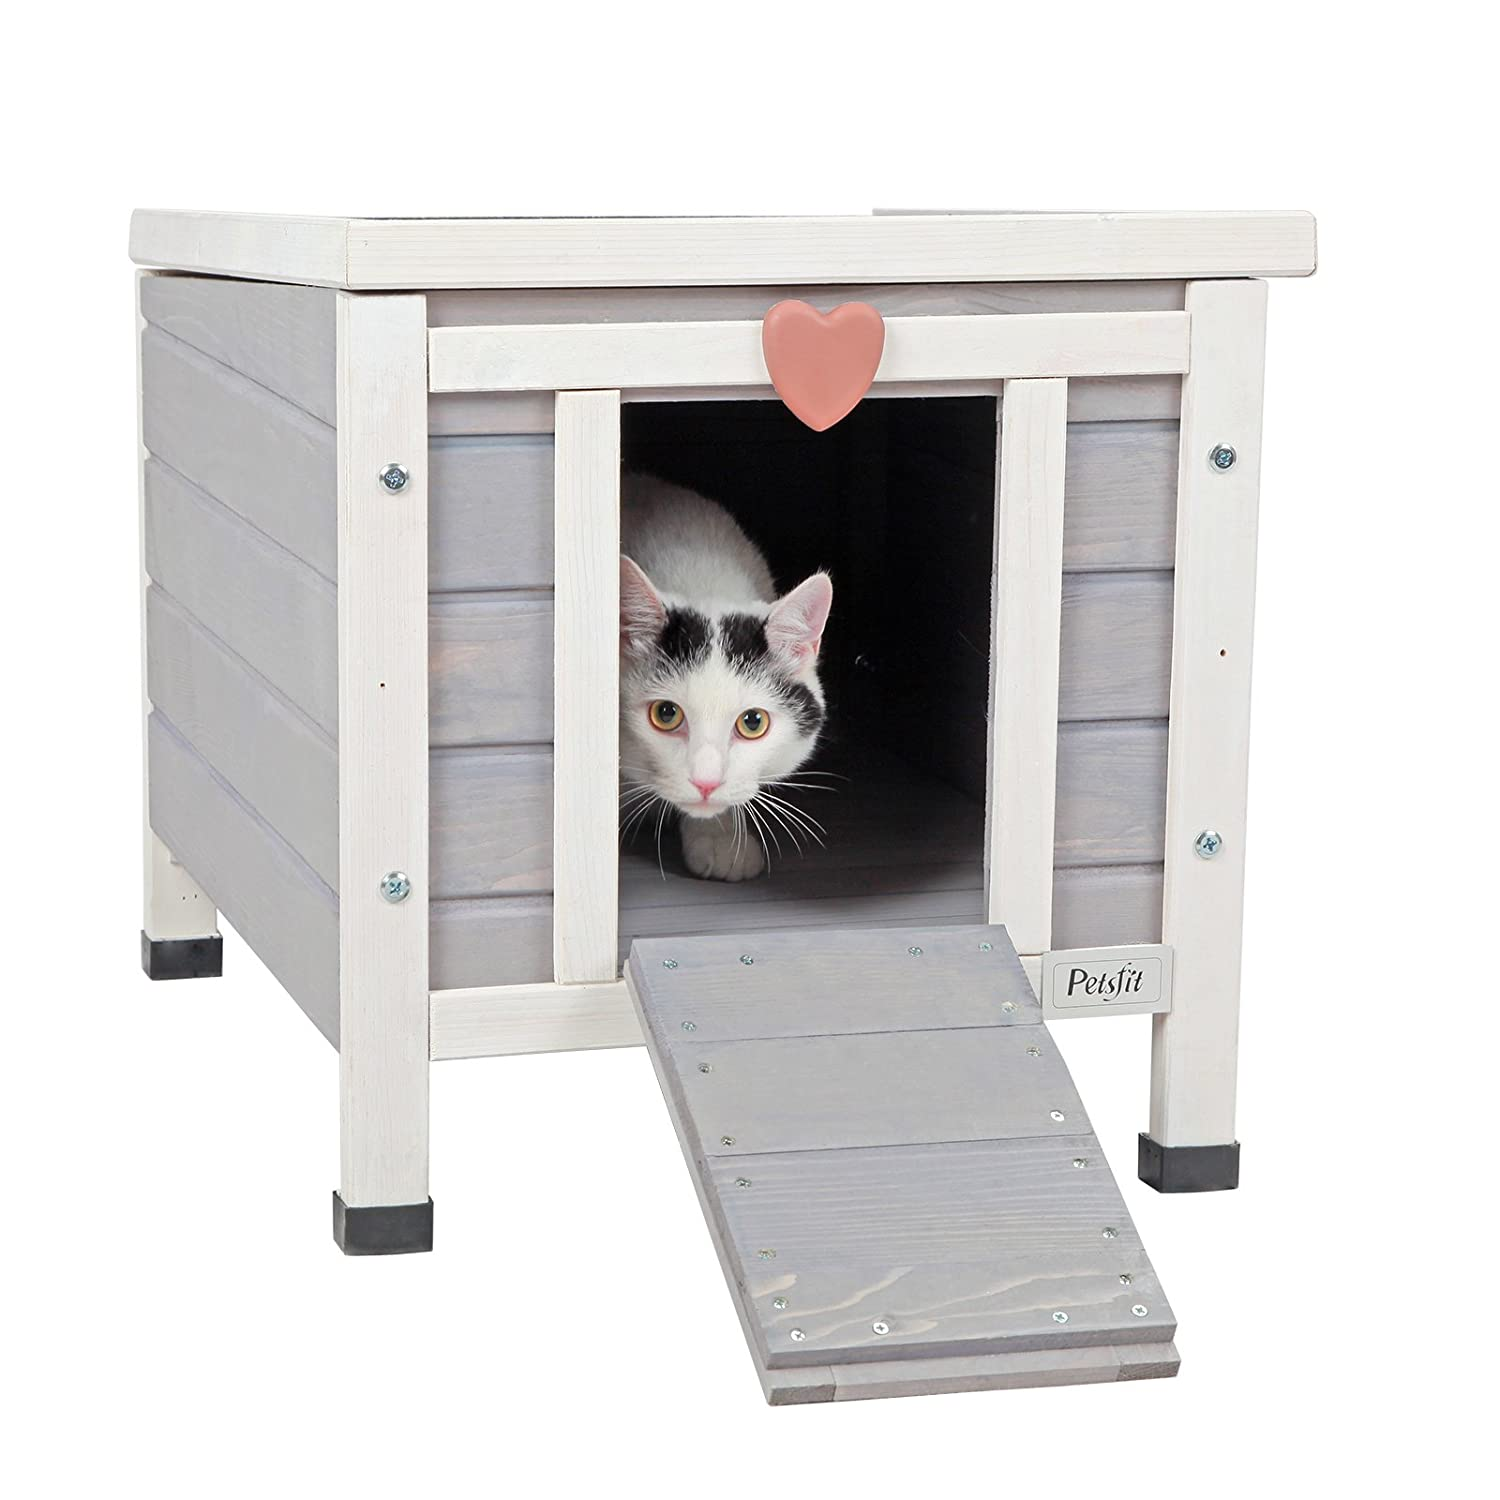 Petsfit Weatherproof Outdoor/Indoor Pet House, 1-Year Warranty